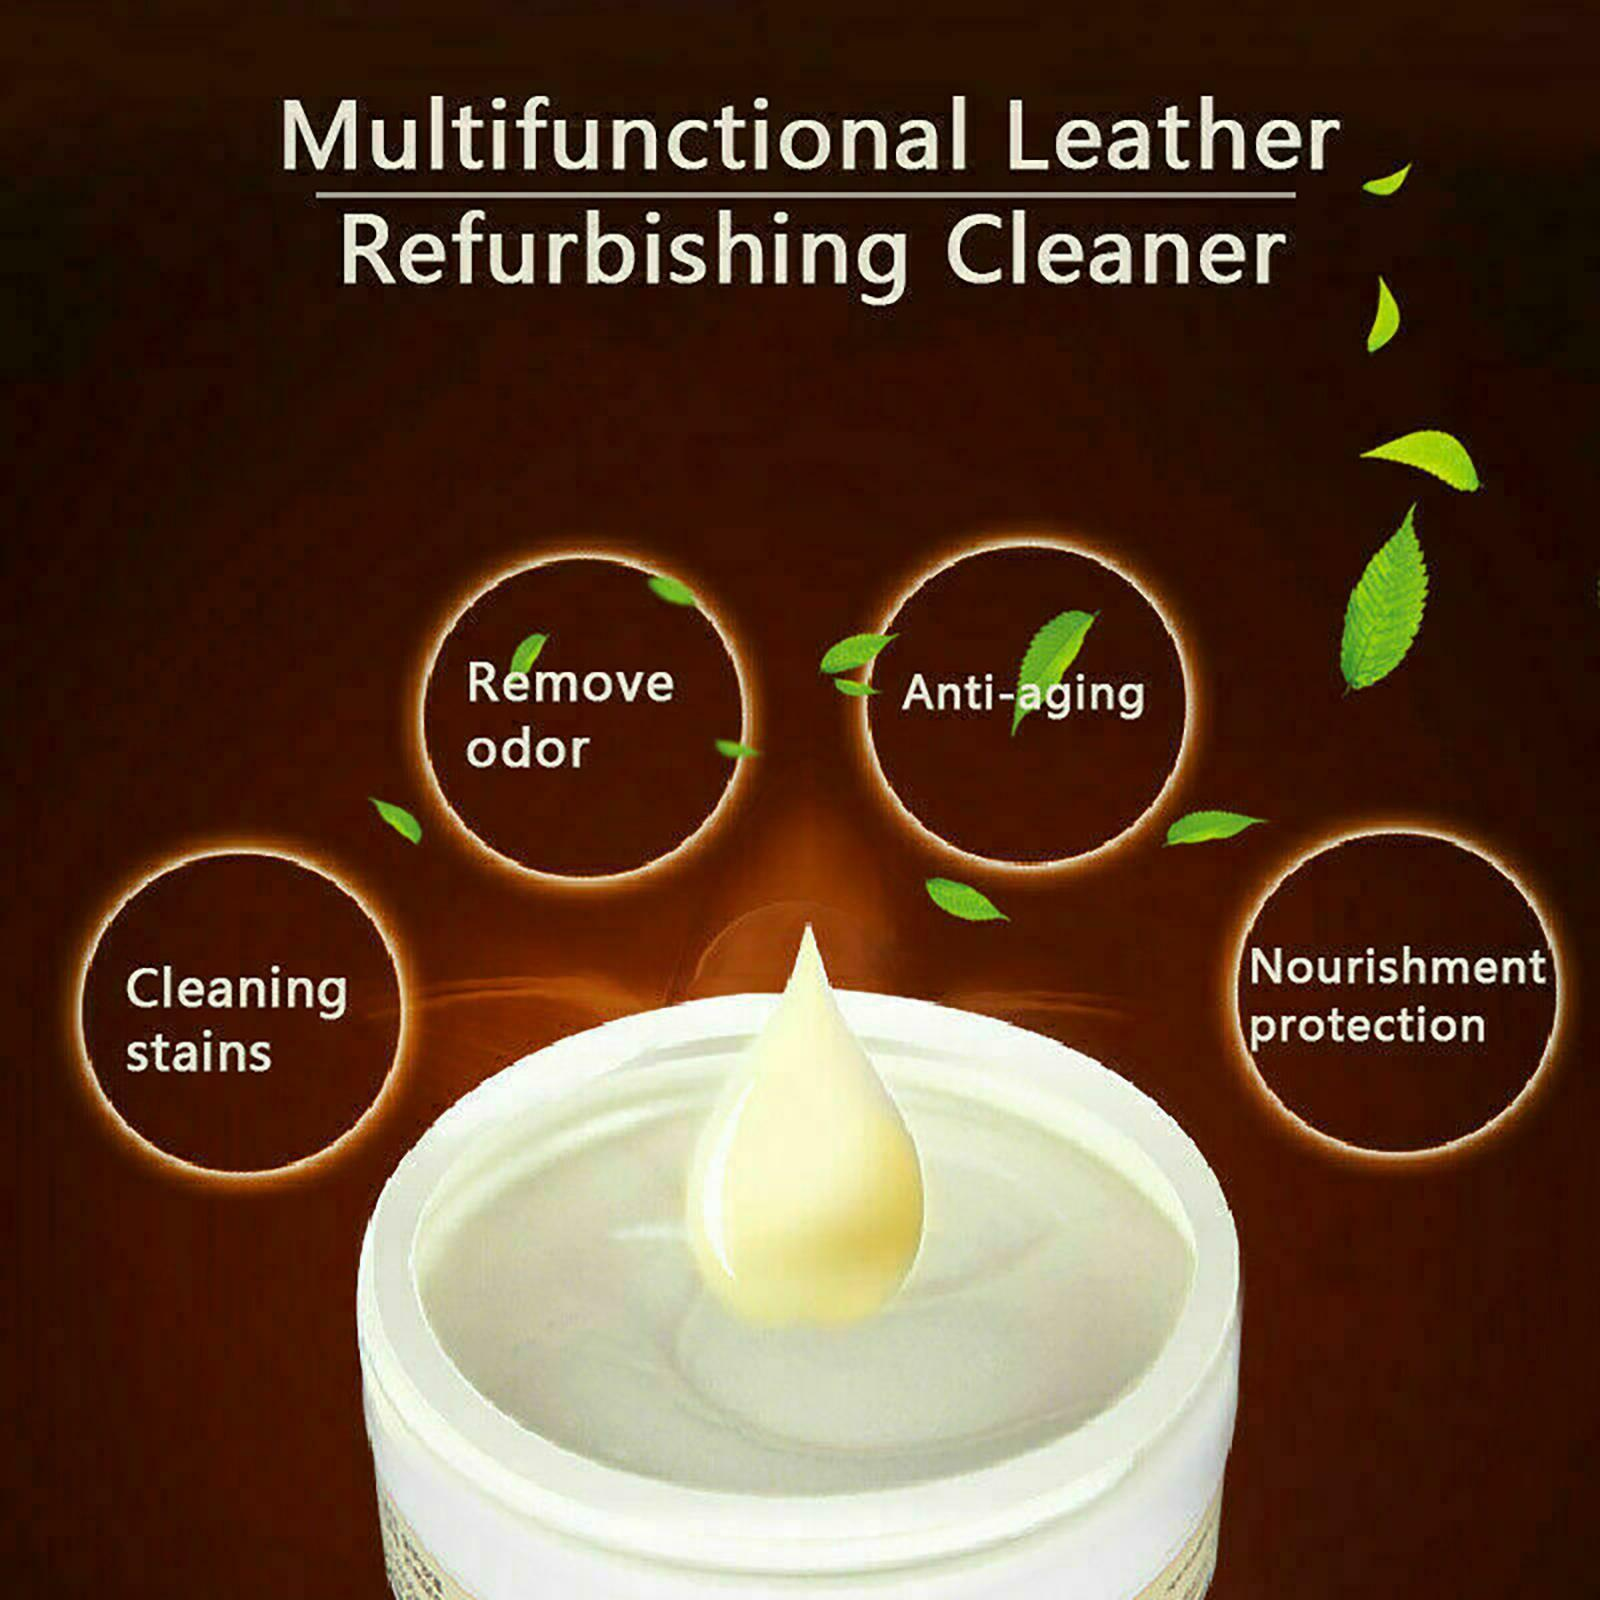 Generise Wax Leather Cleaner, Shoe Care & Tools - Image 4